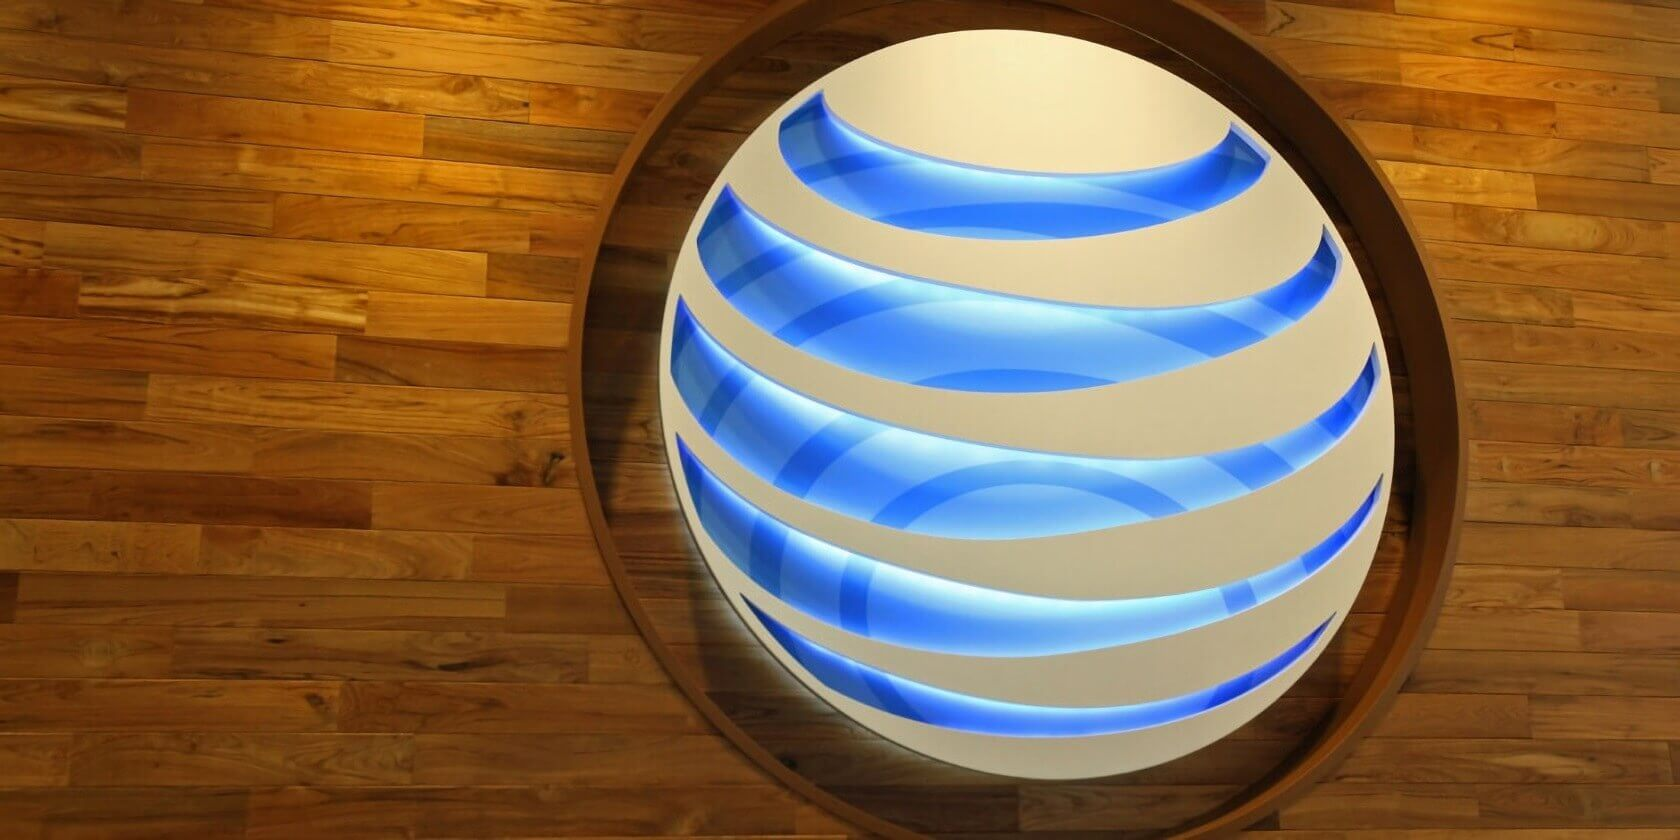 AT&T's unveils three new 'unlimited' plans, offering up to 100GB of unthrottled data